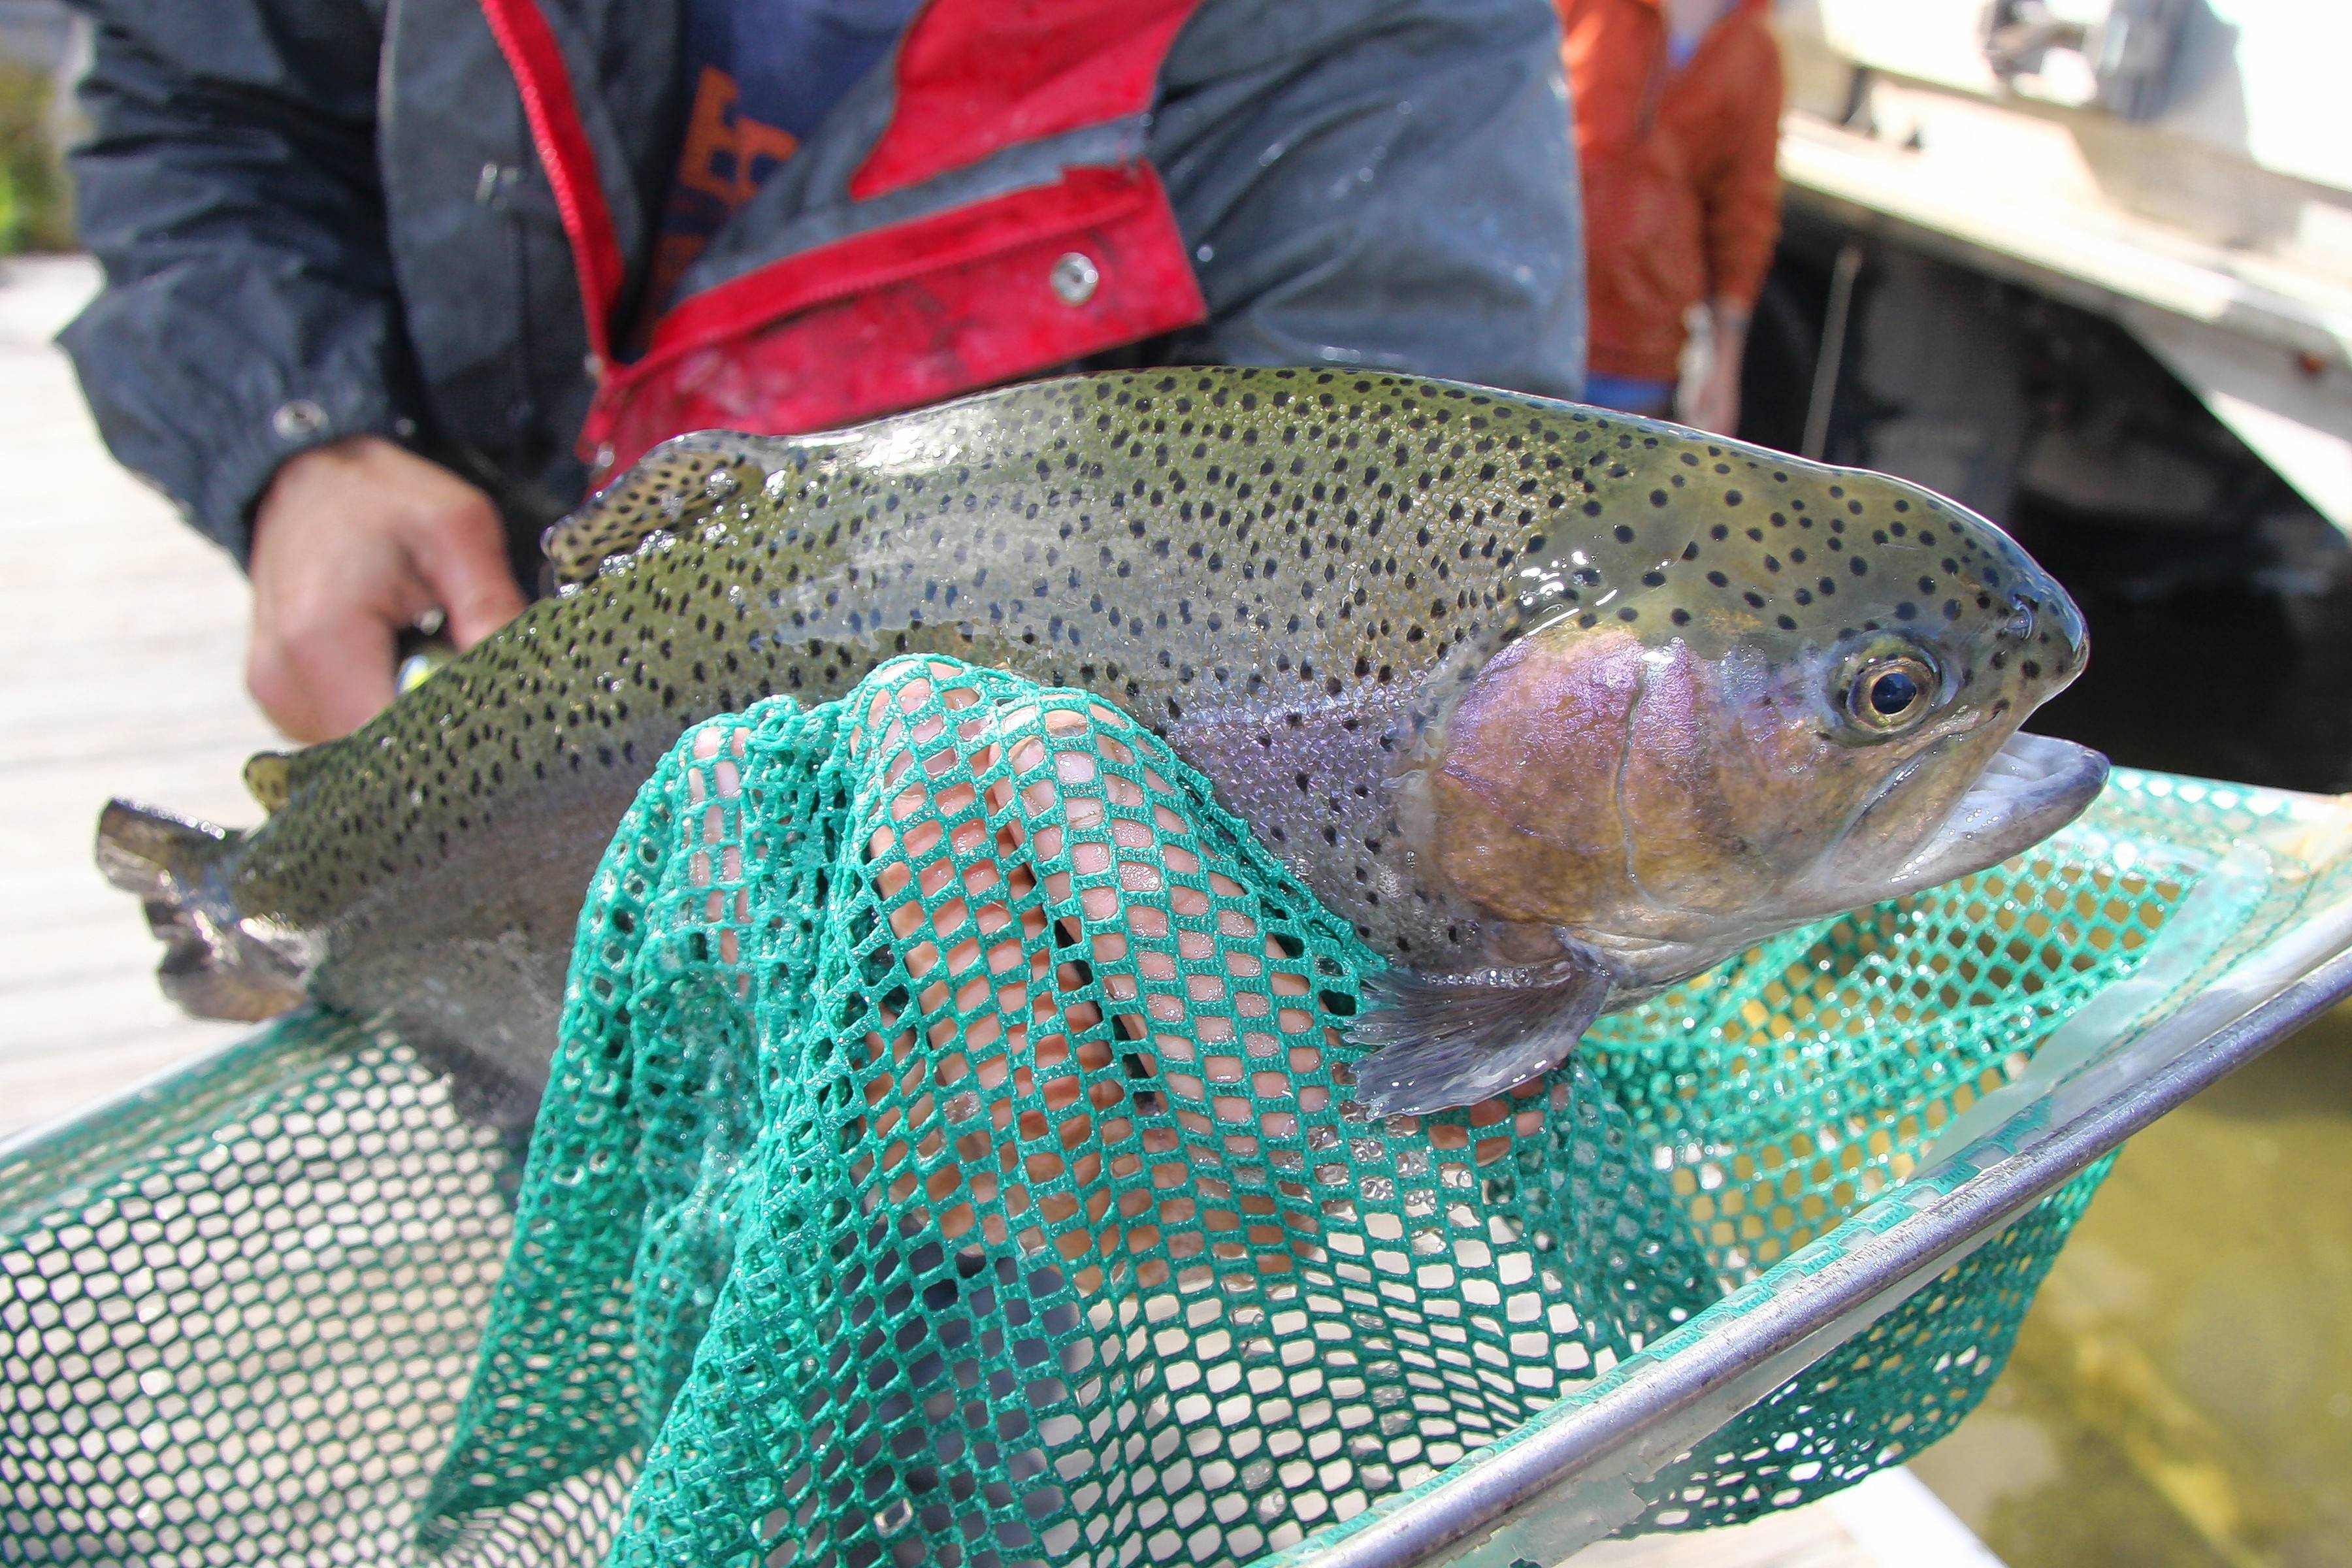 Trout fishing season opens next month at three DuPage County forest preserves. The district and the Illinois Department of Natural Resources have stocked the lakes with more than 3,000 pounds of rainbow trout.